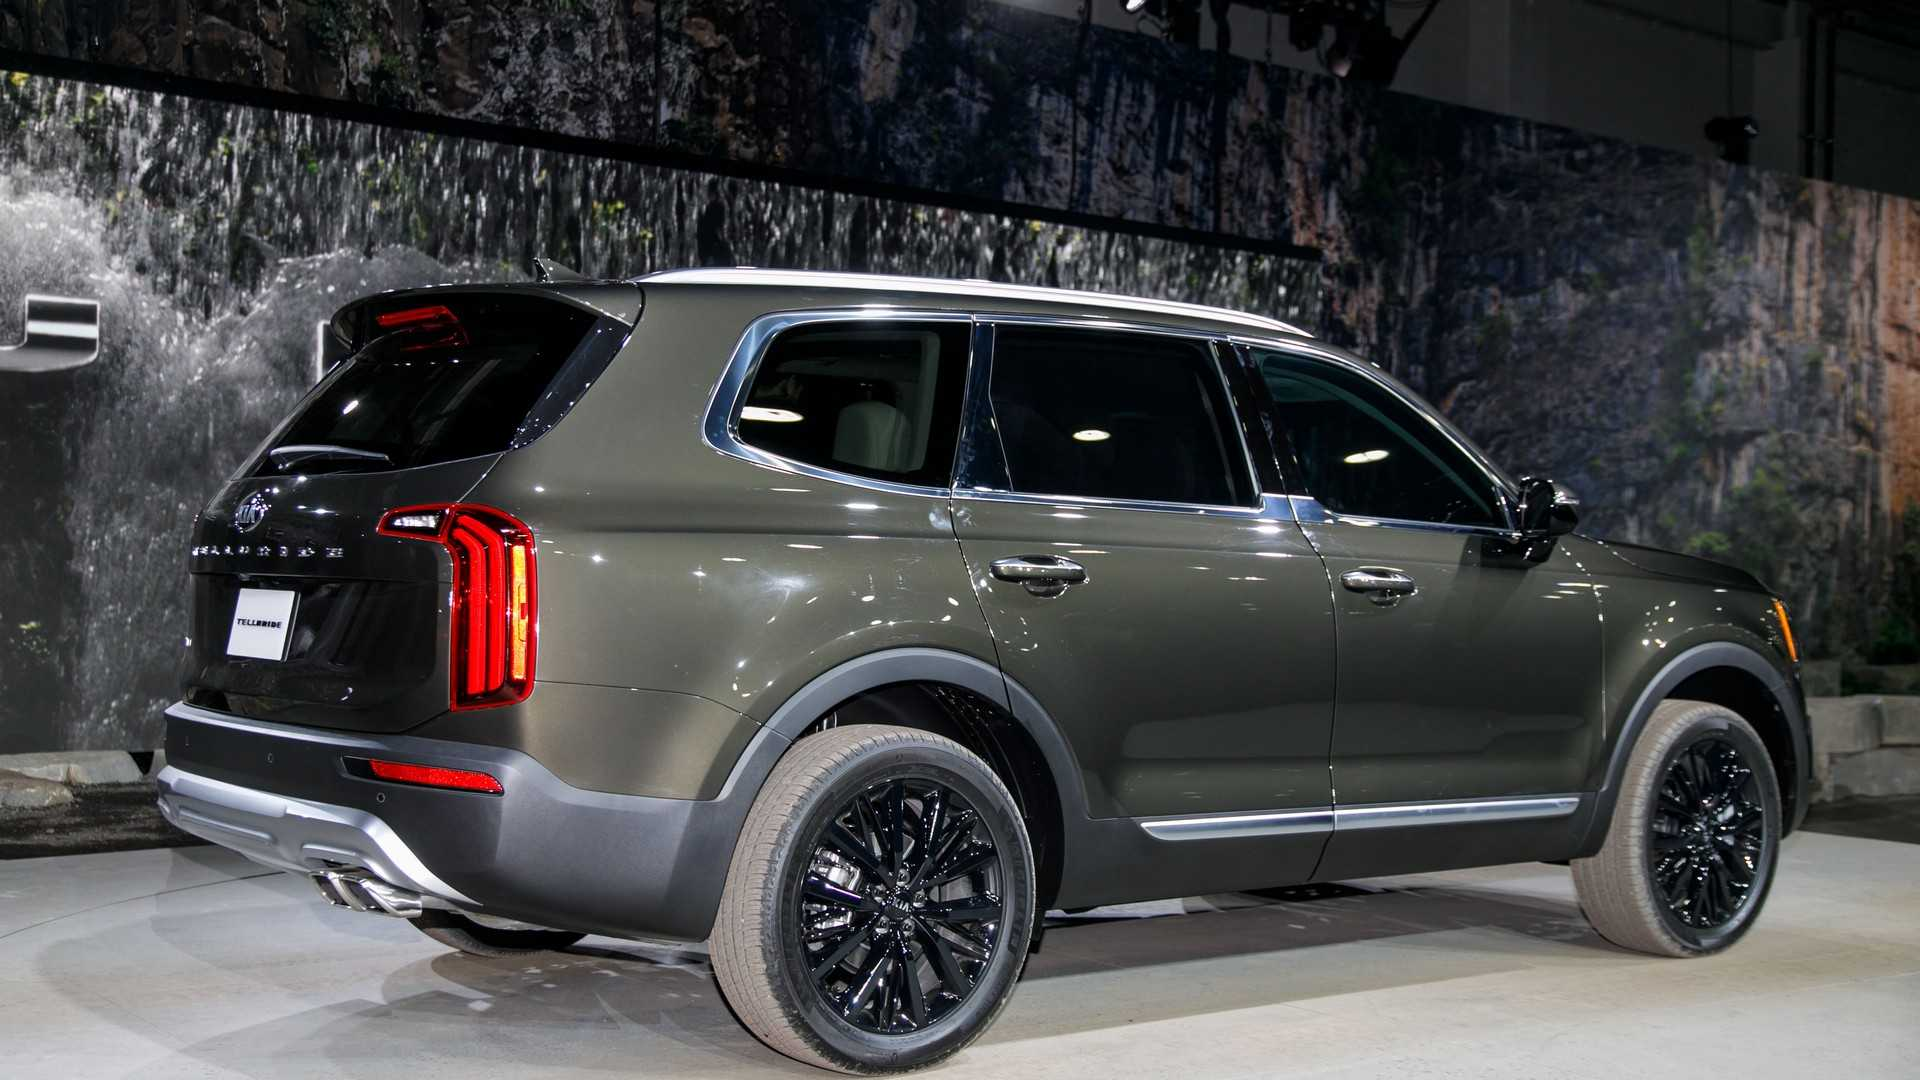 38 New How Much Is The 2020 Kia Telluride Pictures with How Much Is The 2020 Kia Telluride